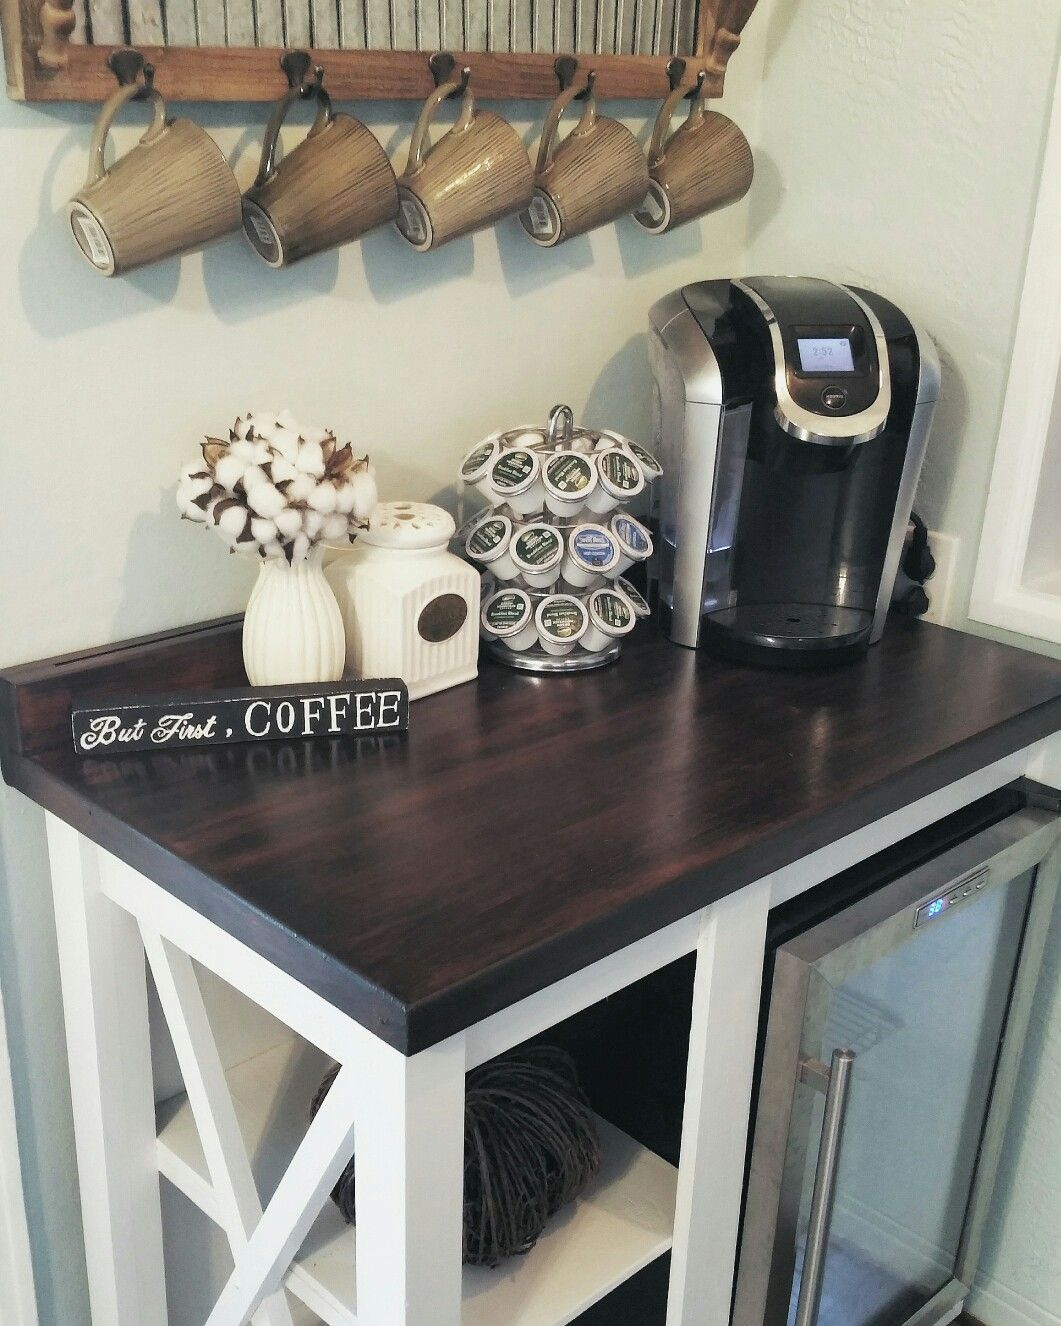 Kuche Top Mount Bar Fridge Farmhouse Coffee Bar With Mini Fridge Coffee Sign Farmhouse